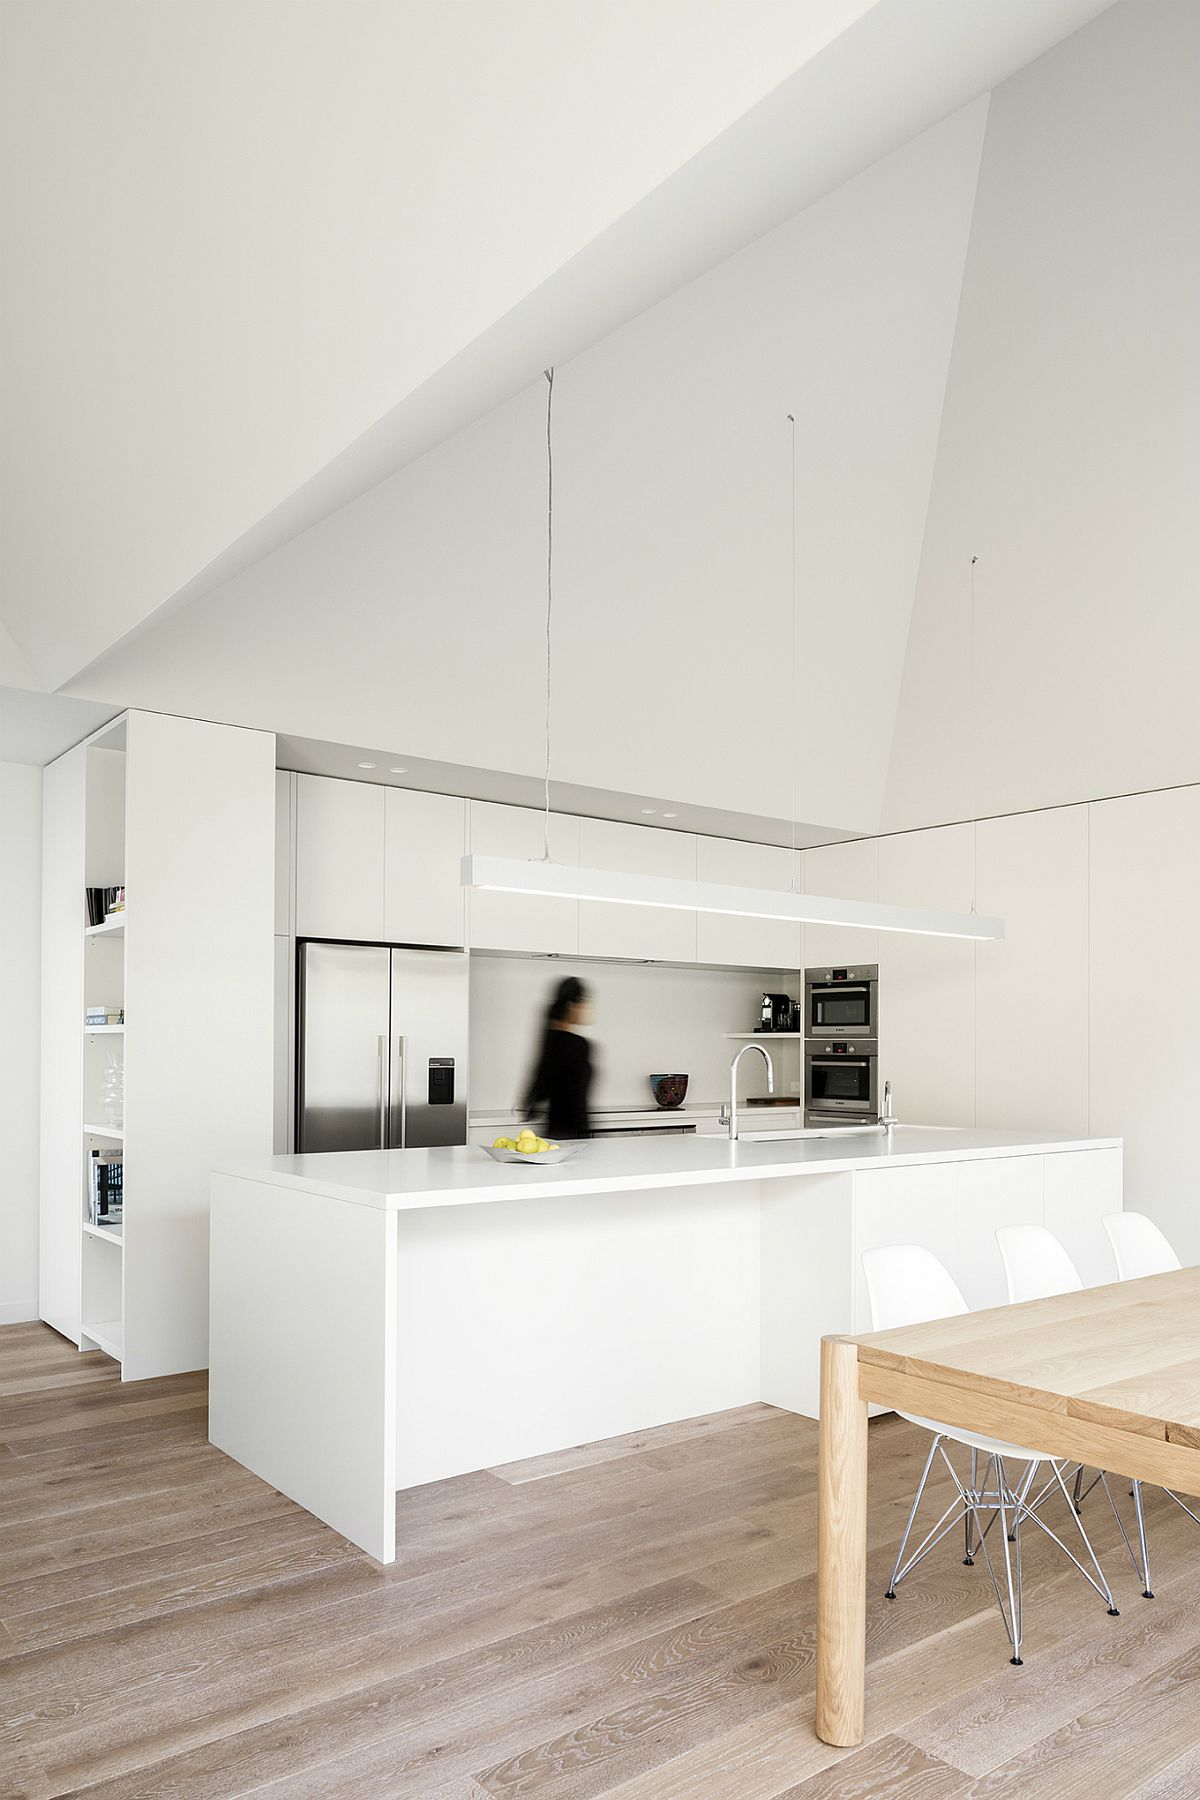 Minimal all-white kitchen with space-savvy shelving